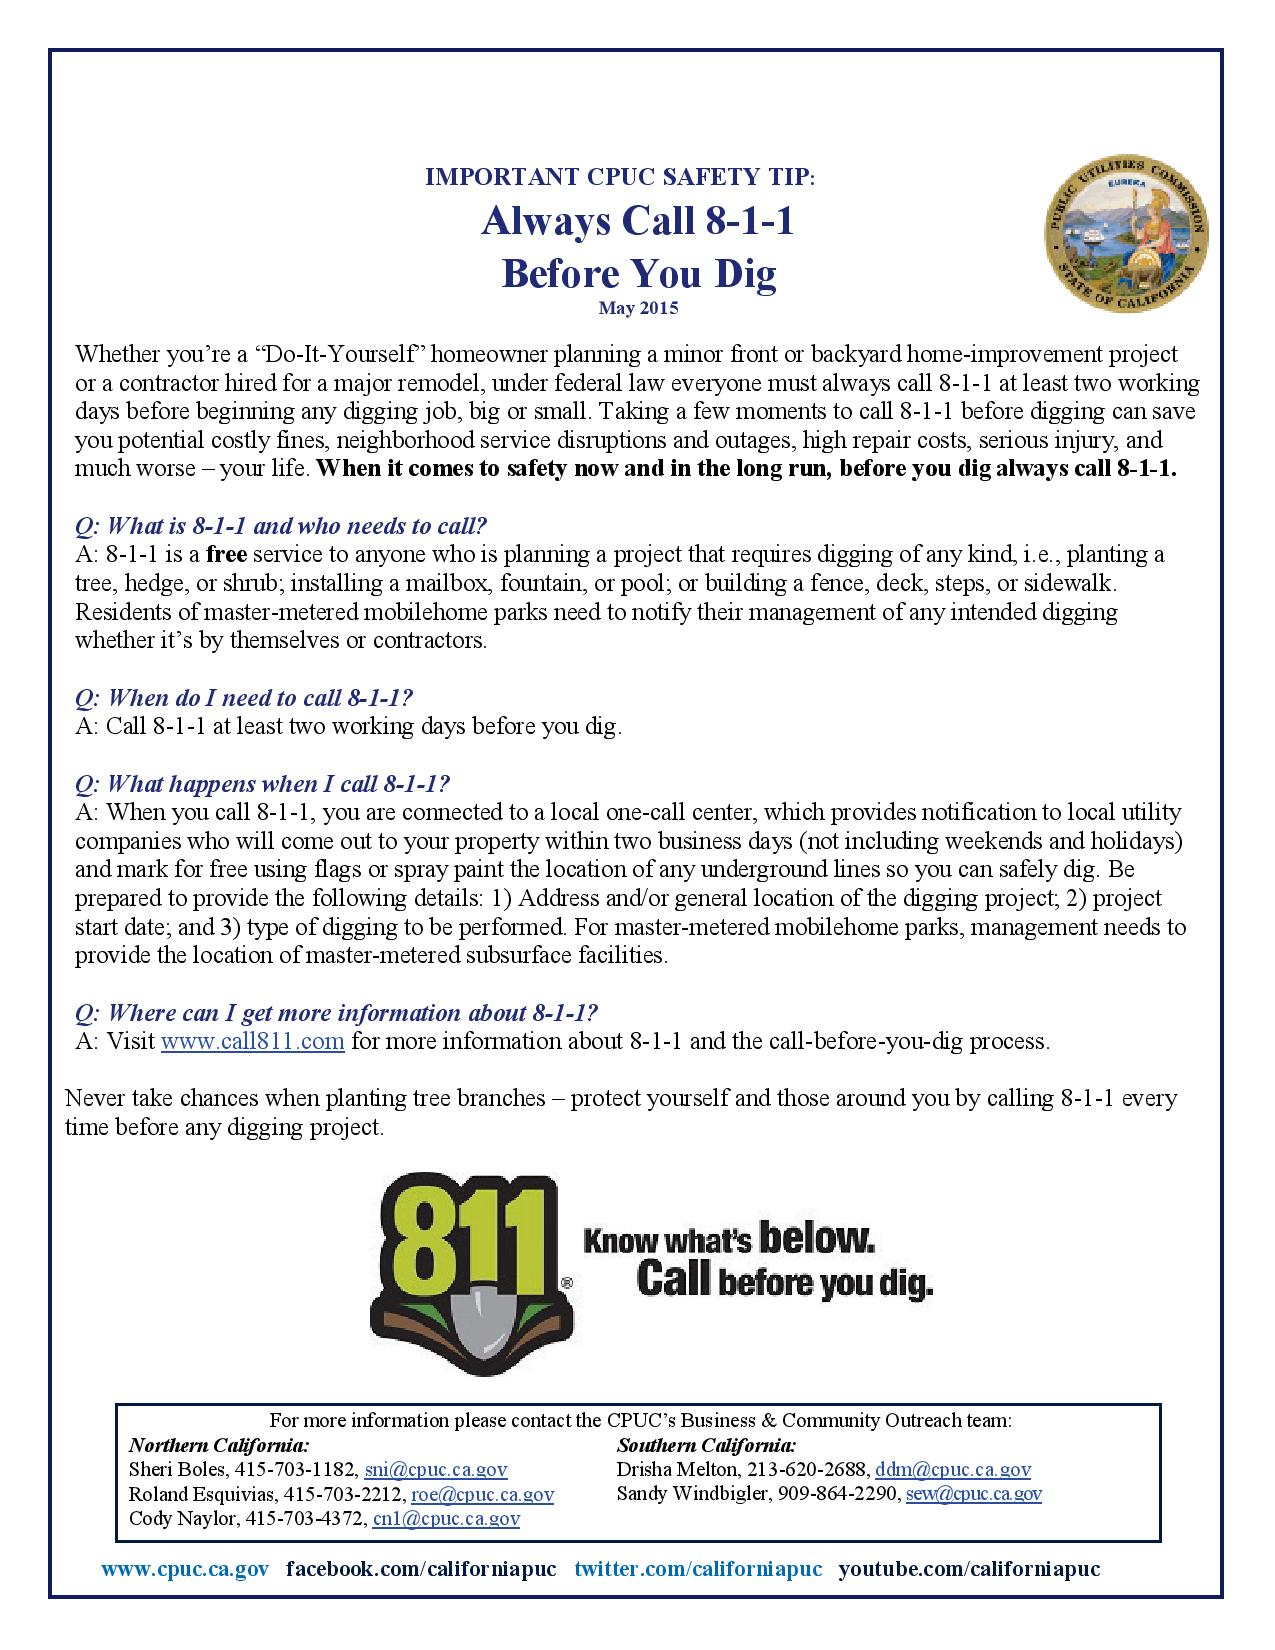 how to call 811 from ontario